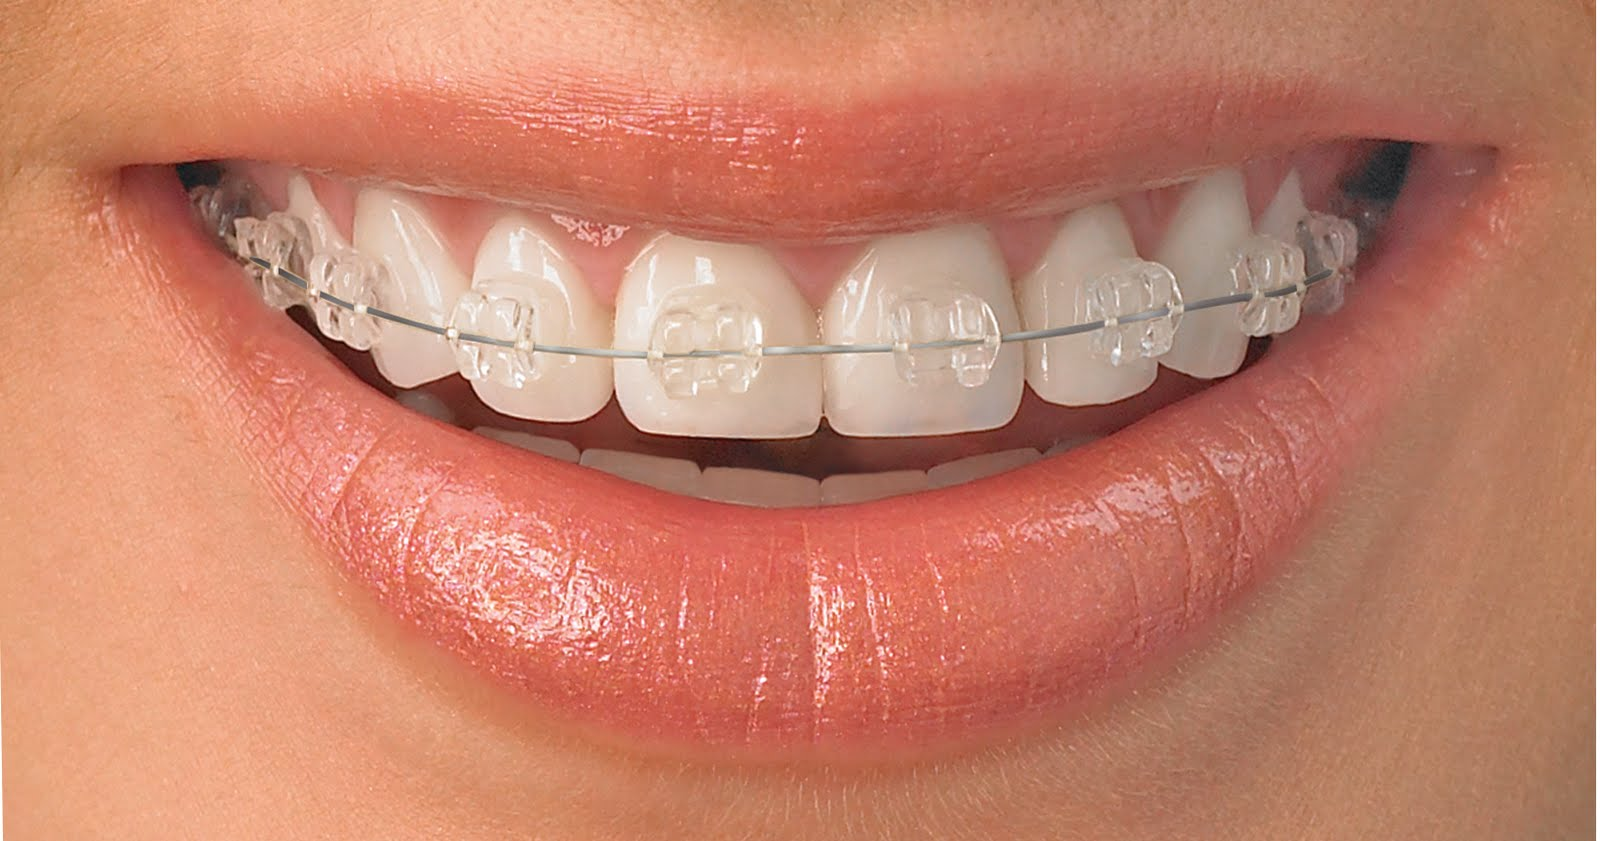 Braces In Mouth 119